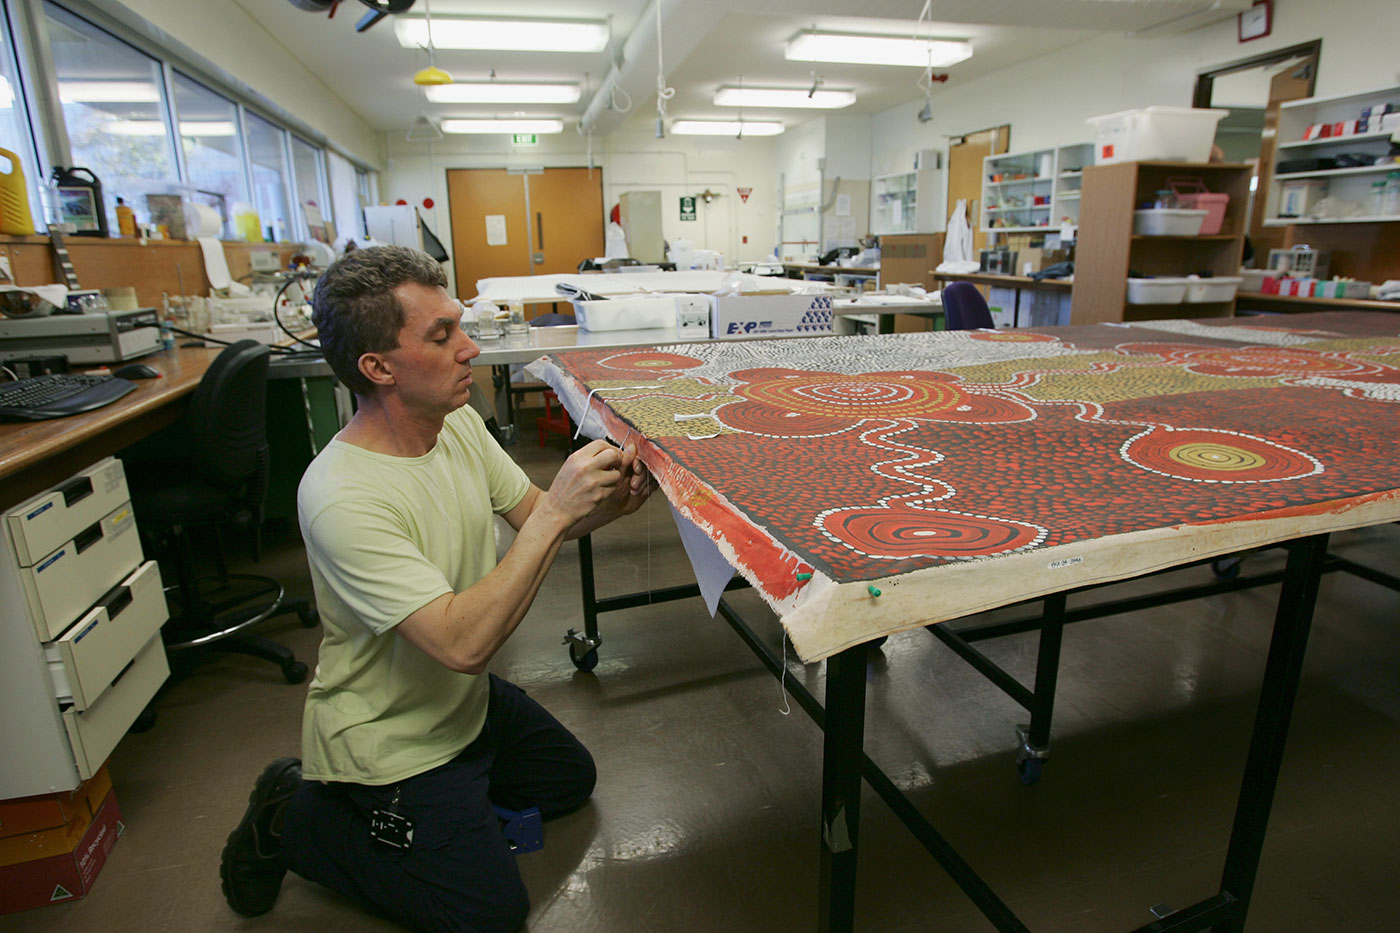 A conservator kneels to inspect edge of large canvas, with laboratory in background. - click to view larger image